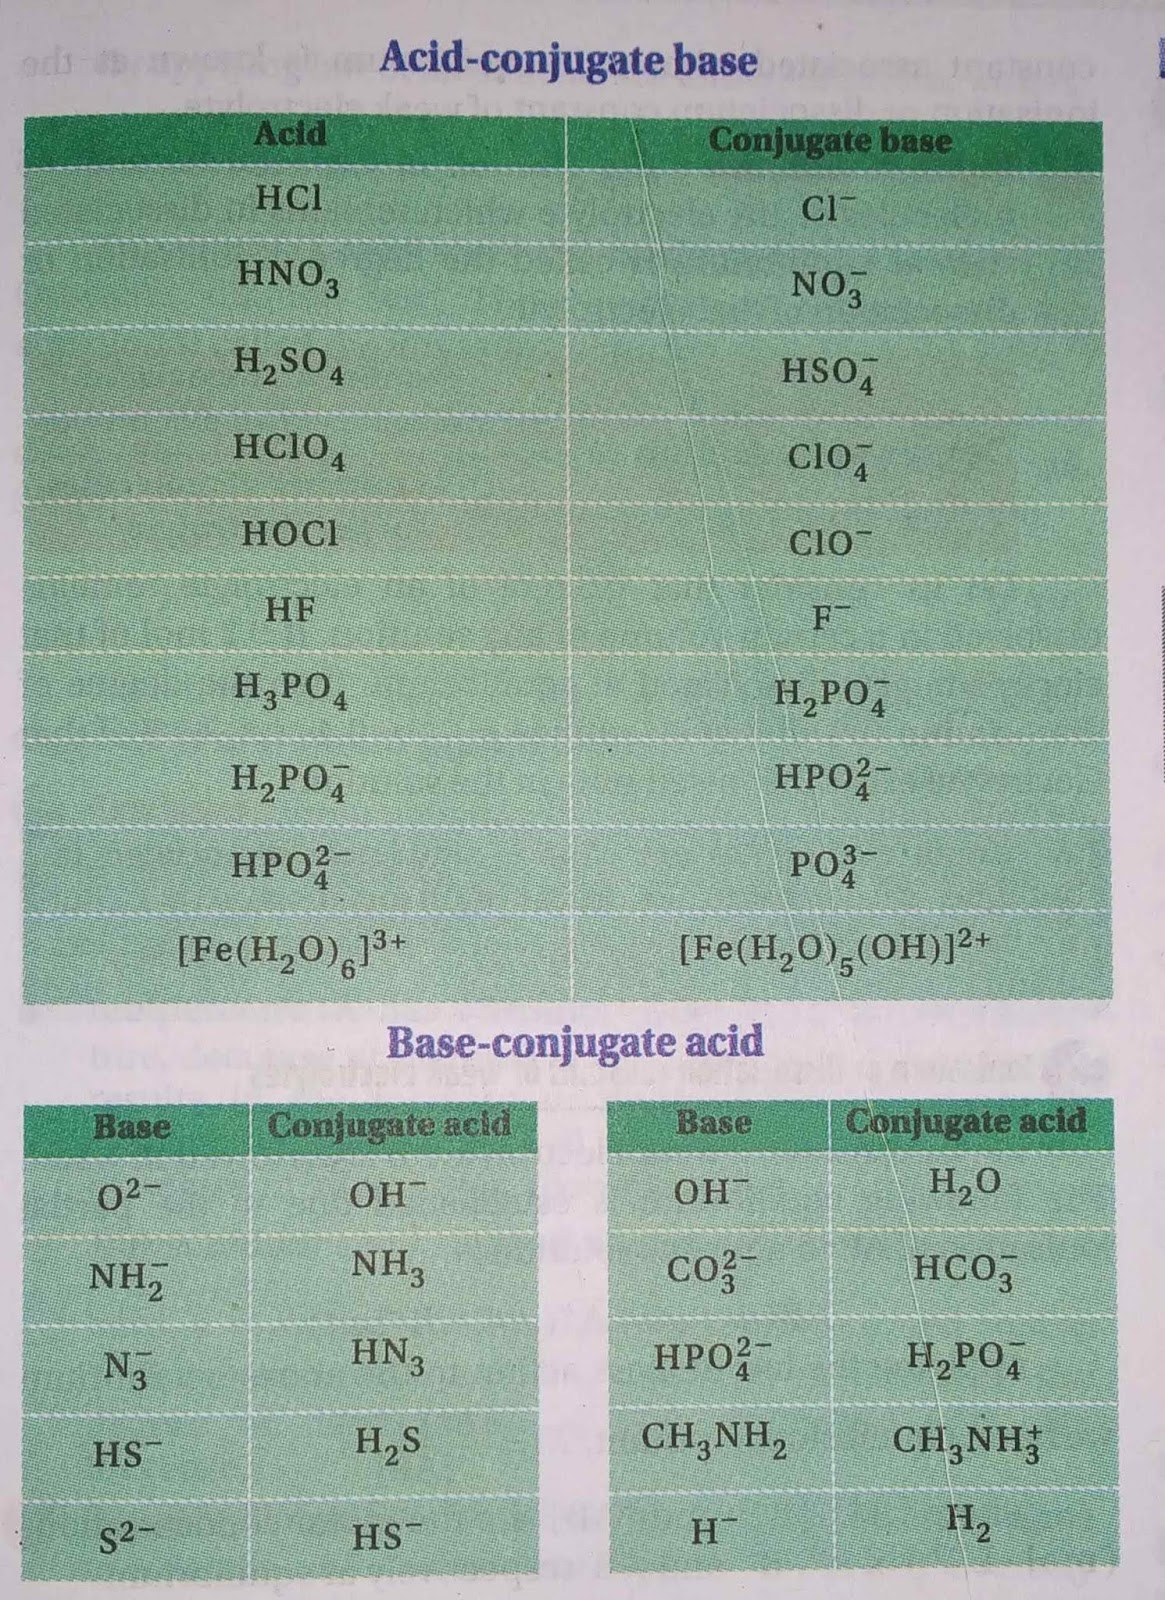 Ionic Equilibrium Acids And Bases Theory